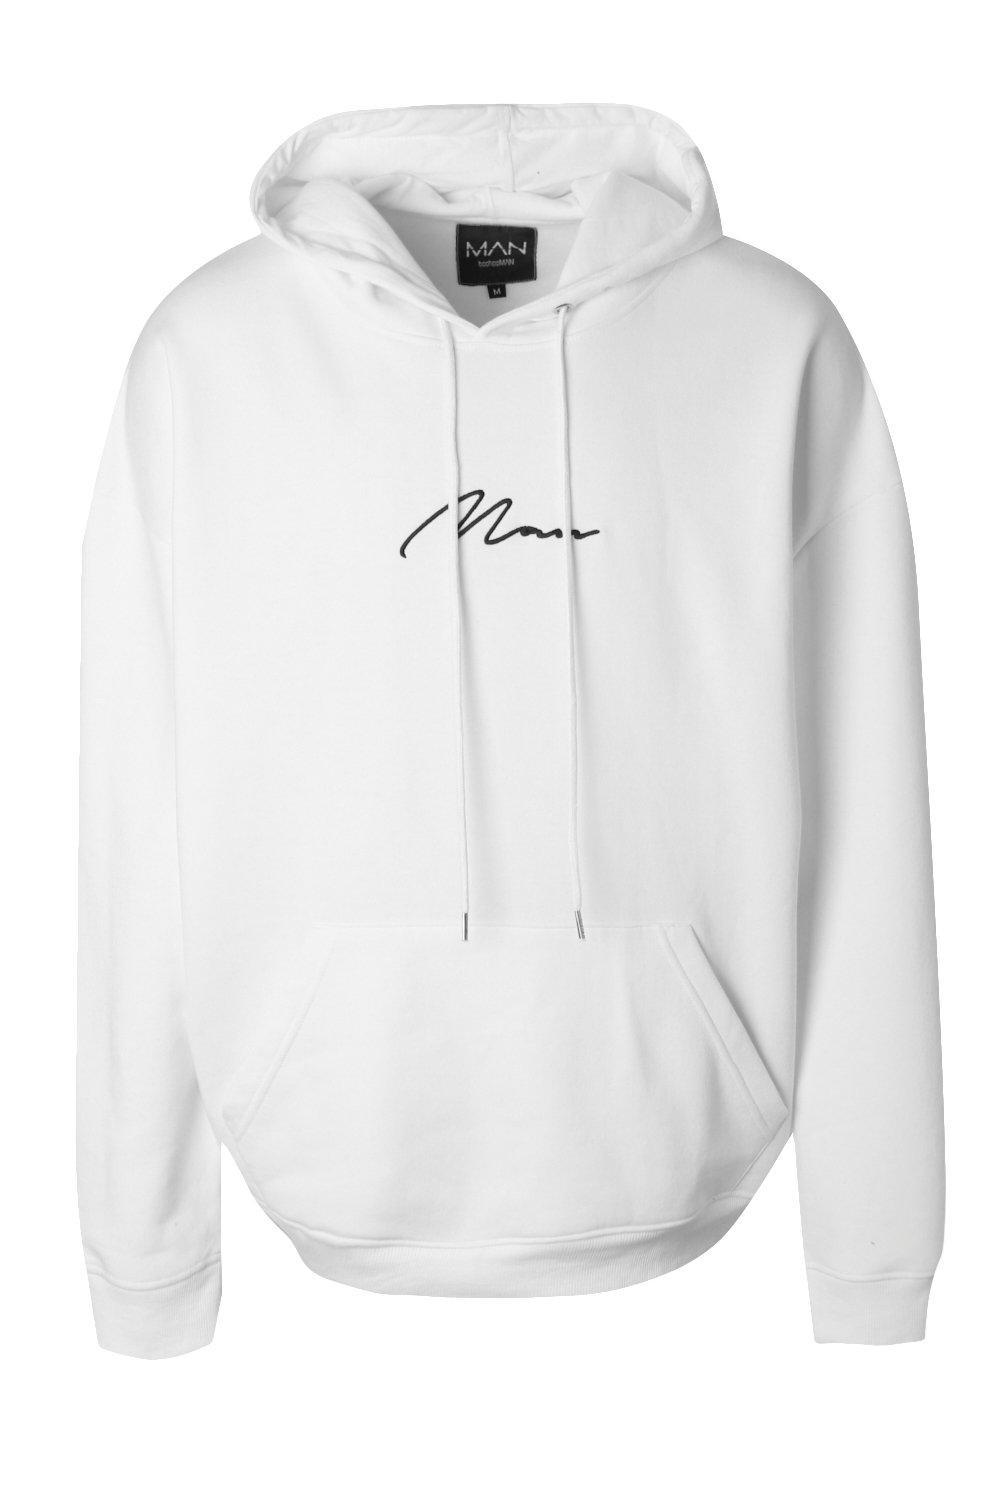 Lyst - Boohoo Oversized Man Signature Hoodie in White for Men - Save 40% f4db995a64